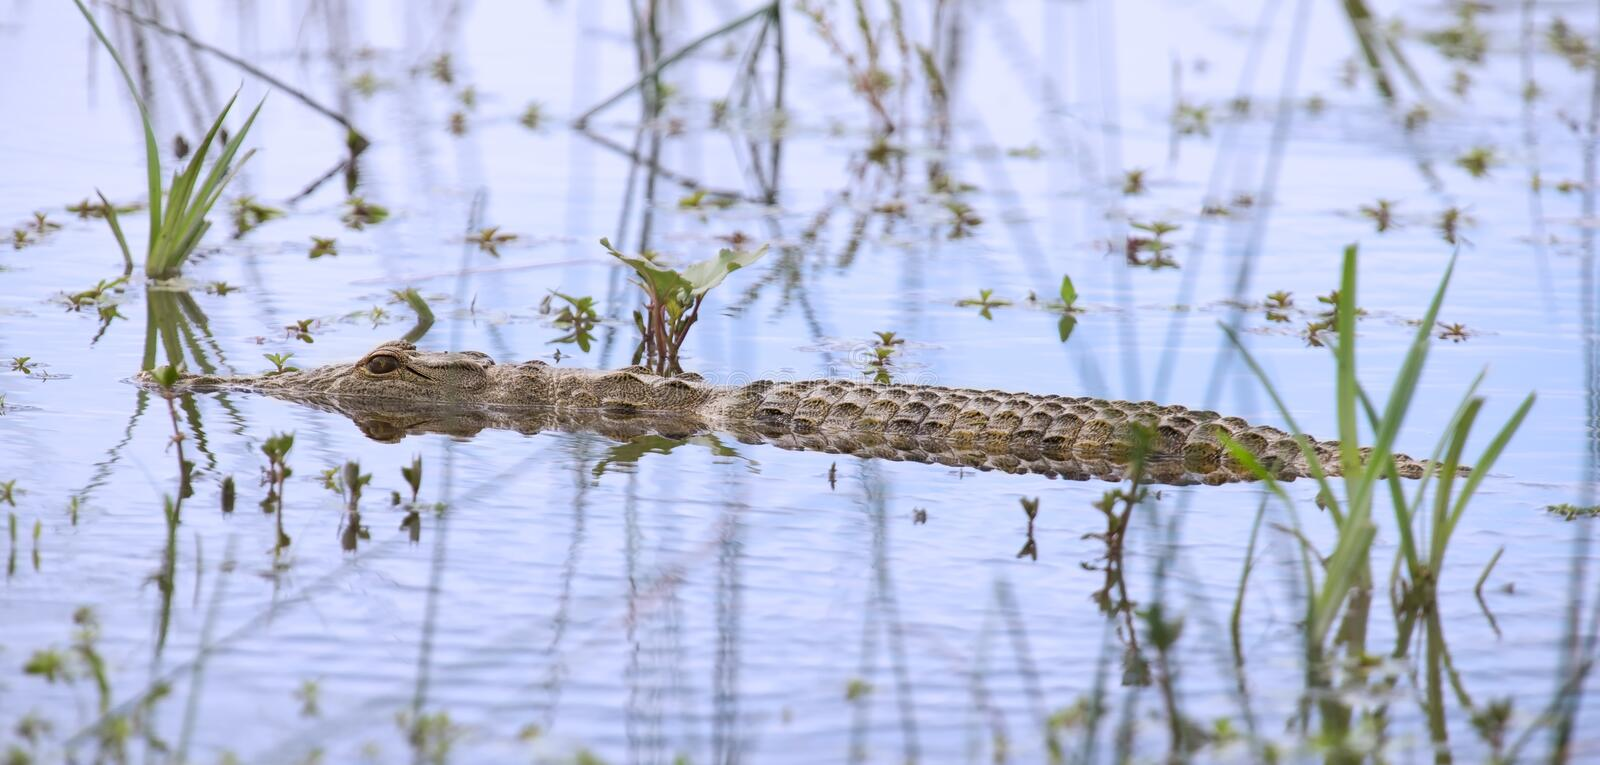 Crocodile swim with stealth among water plants to stalk prey royalty free stock photo